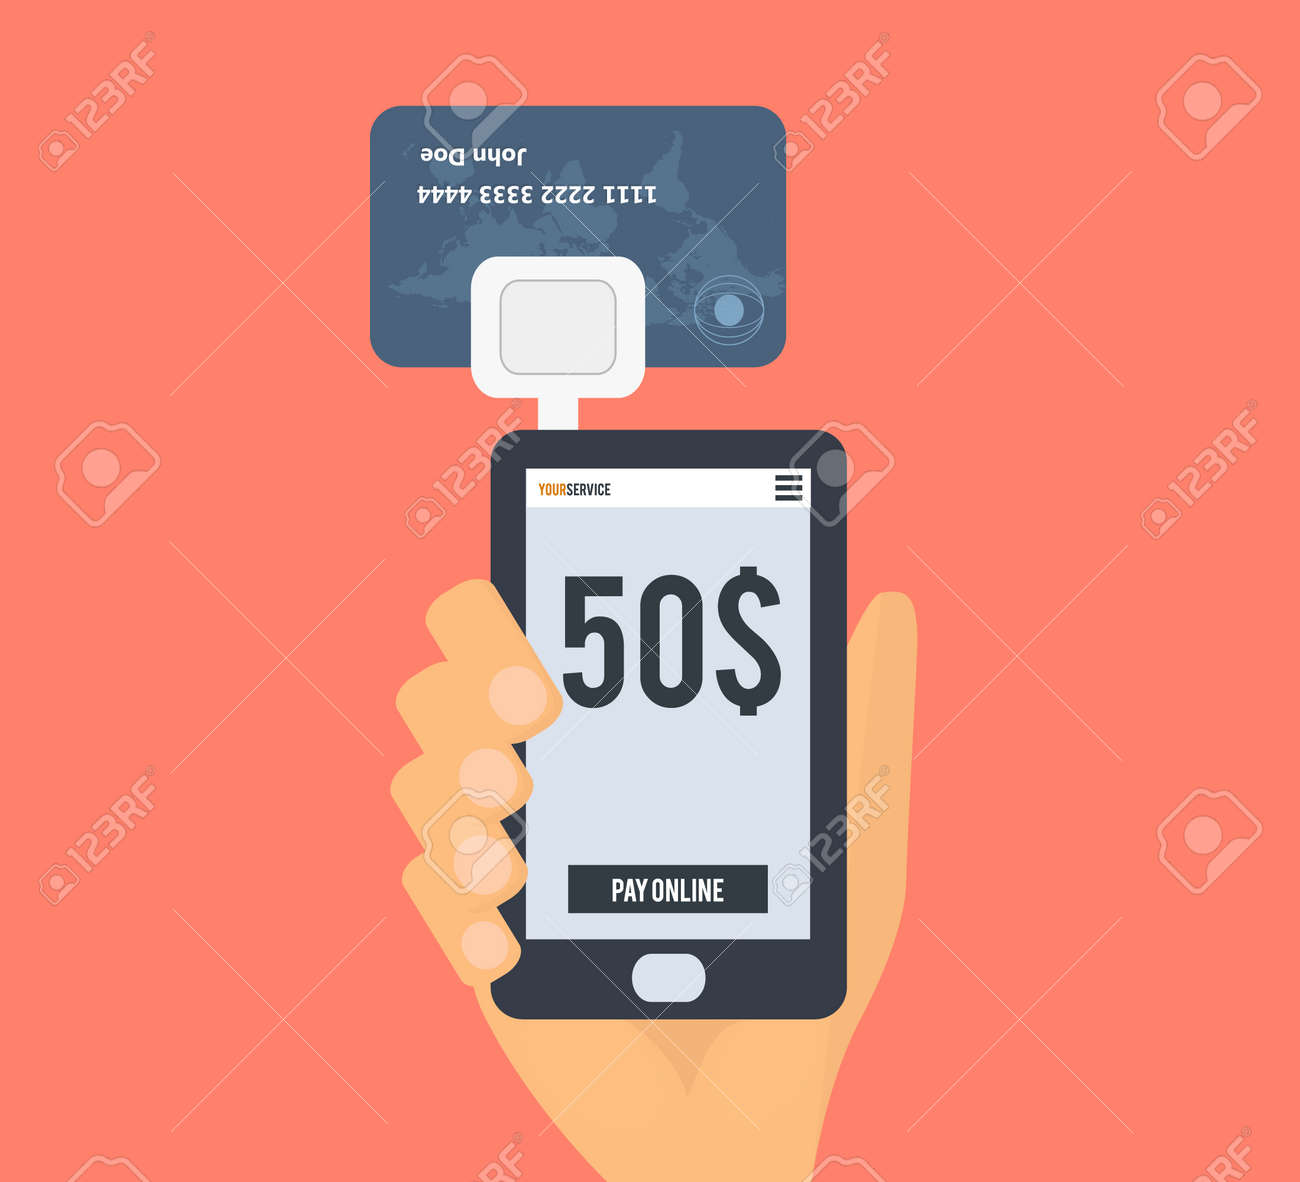 Smartphone Credit Card Reader Hand With Mobile Phone Bank Card Royalty Free Cliparts Vectors And Stock Illustration Image 60215012